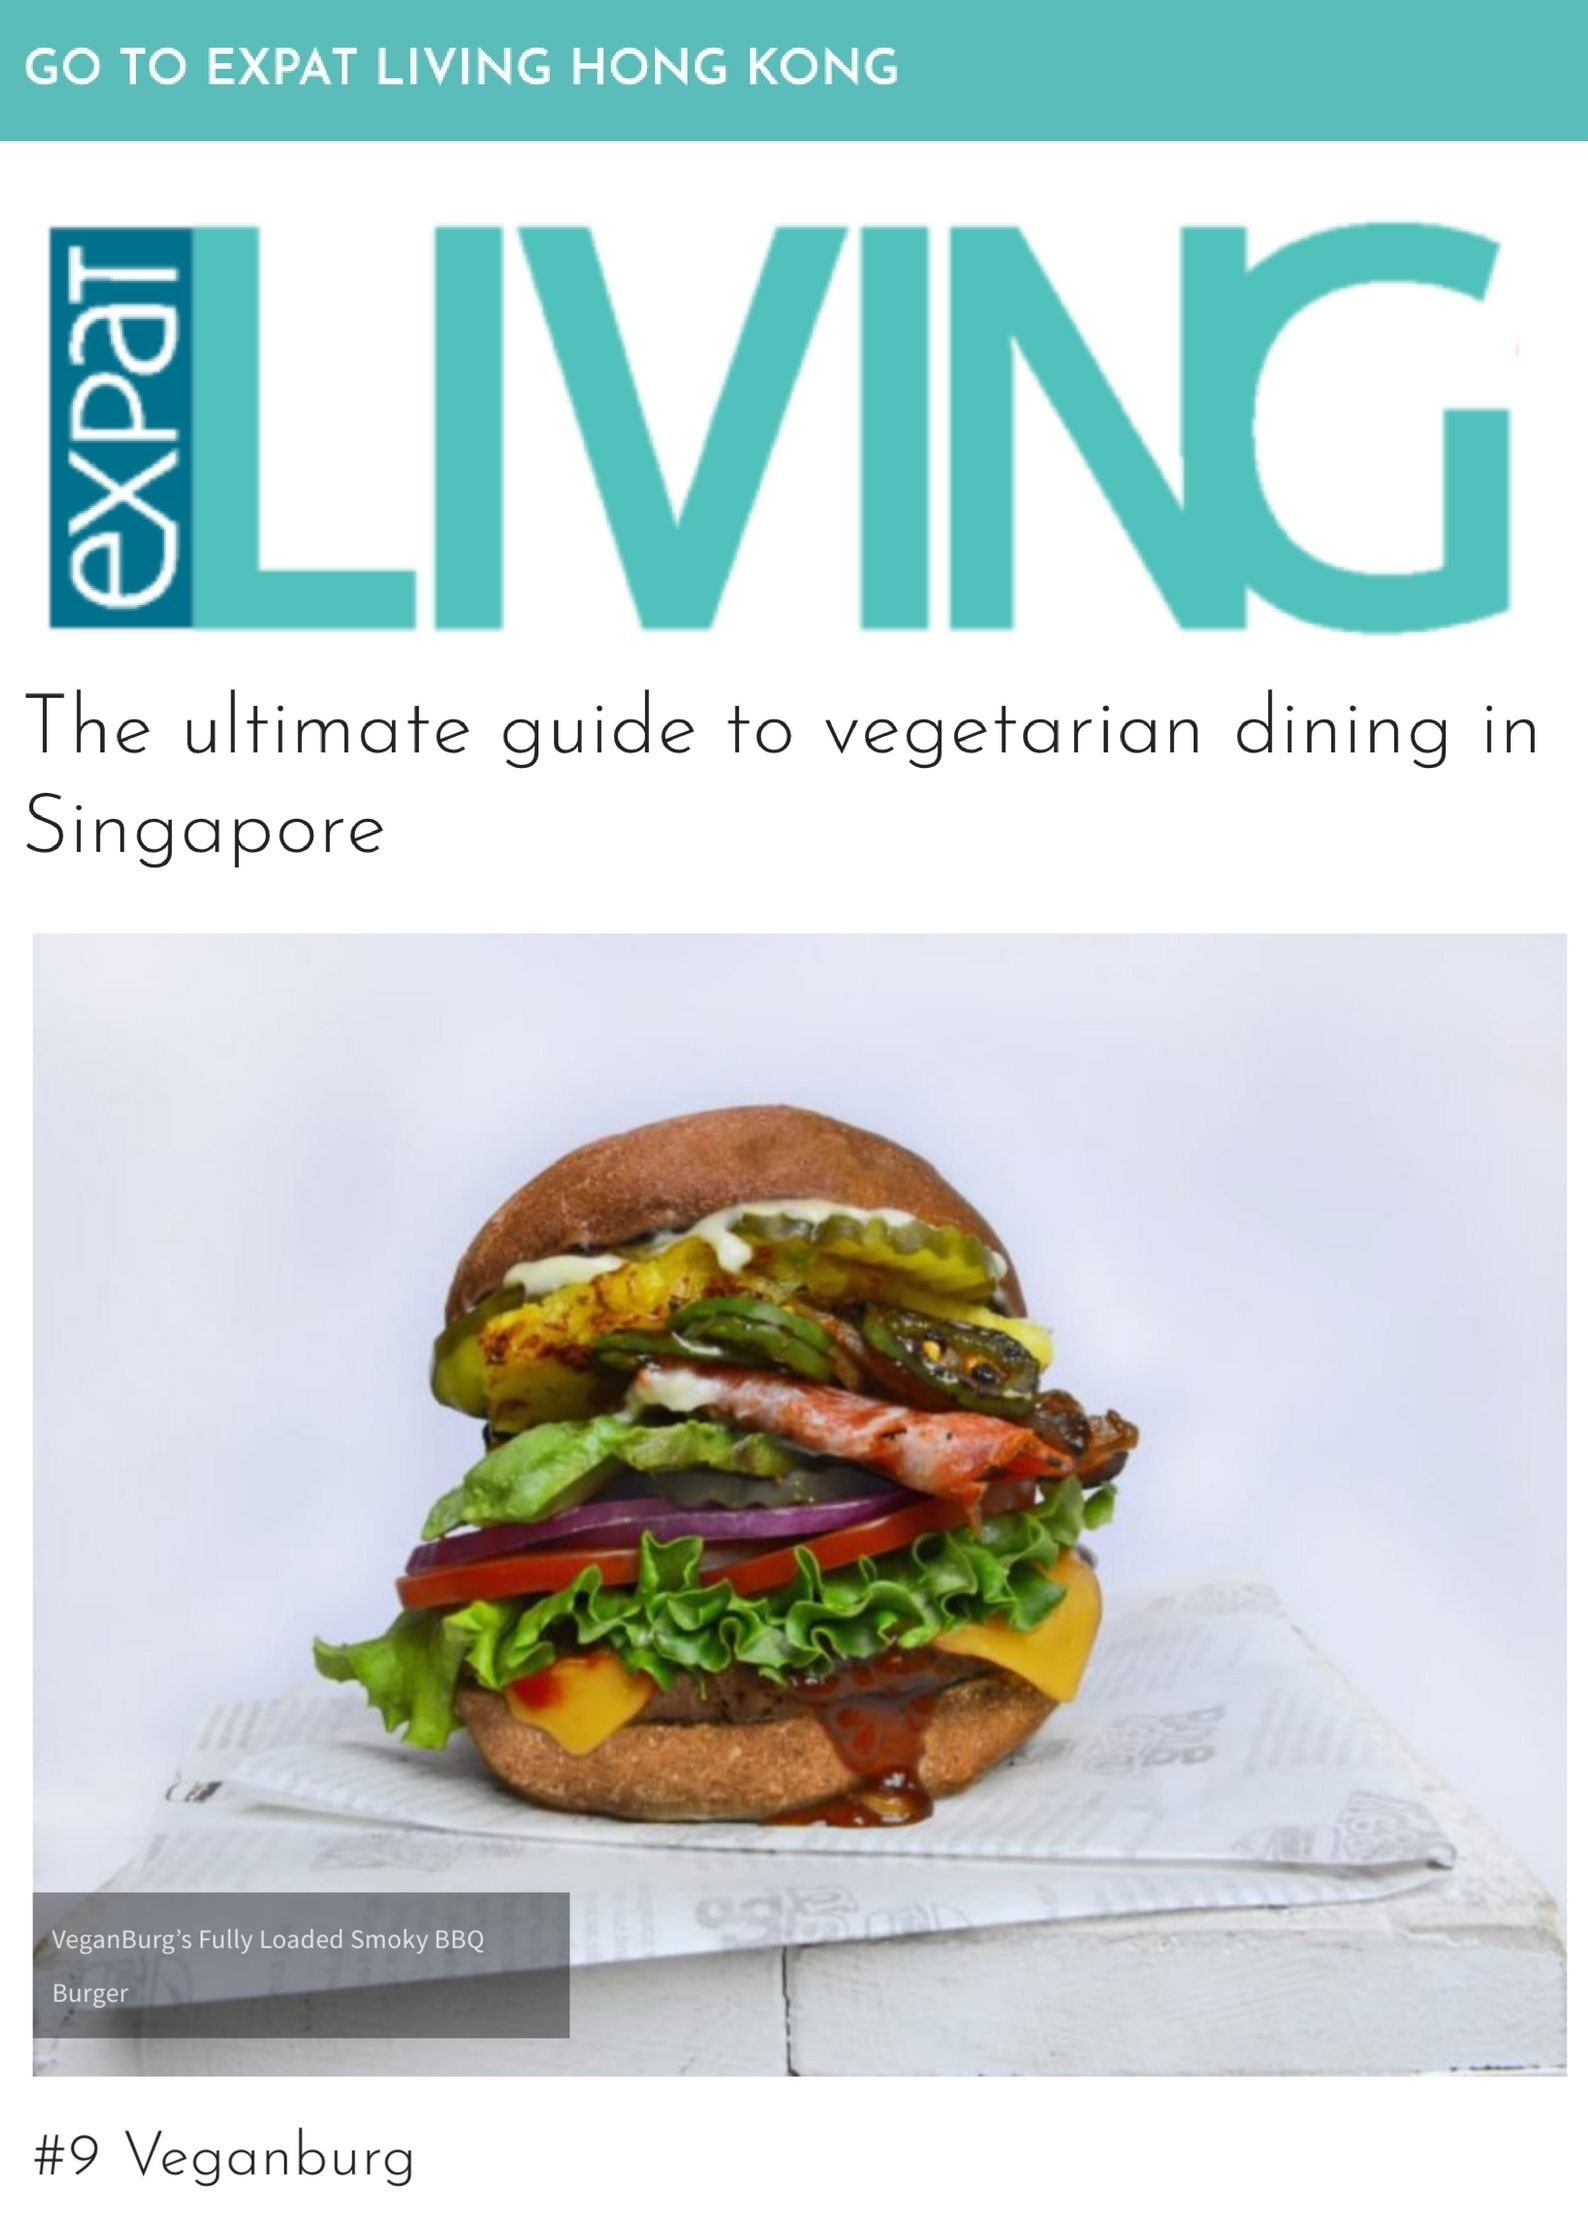 Singapore+Expat+Living_+The+ultimate+guide+to+vegetarian+dining+in+Singapore.jpg